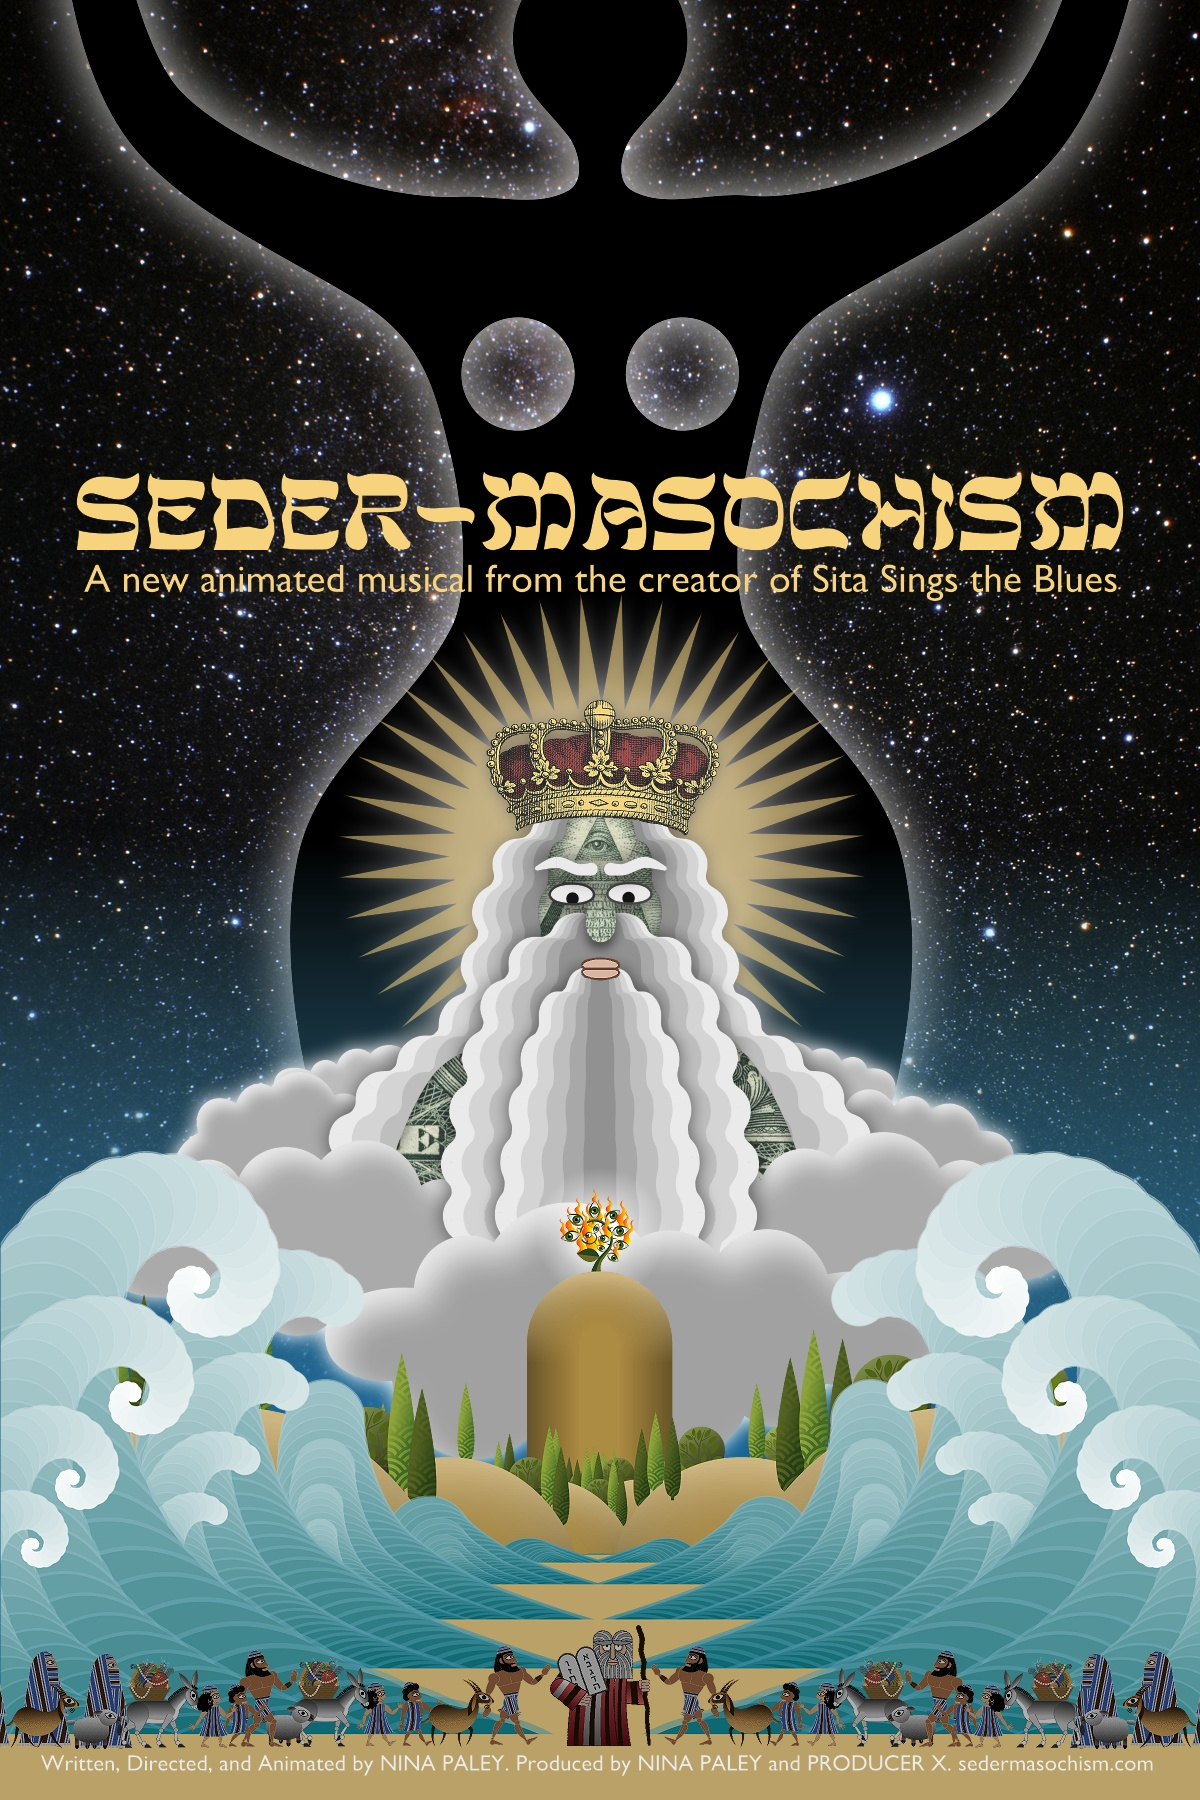 Seder-Masochism – A new animated feature from the creator of